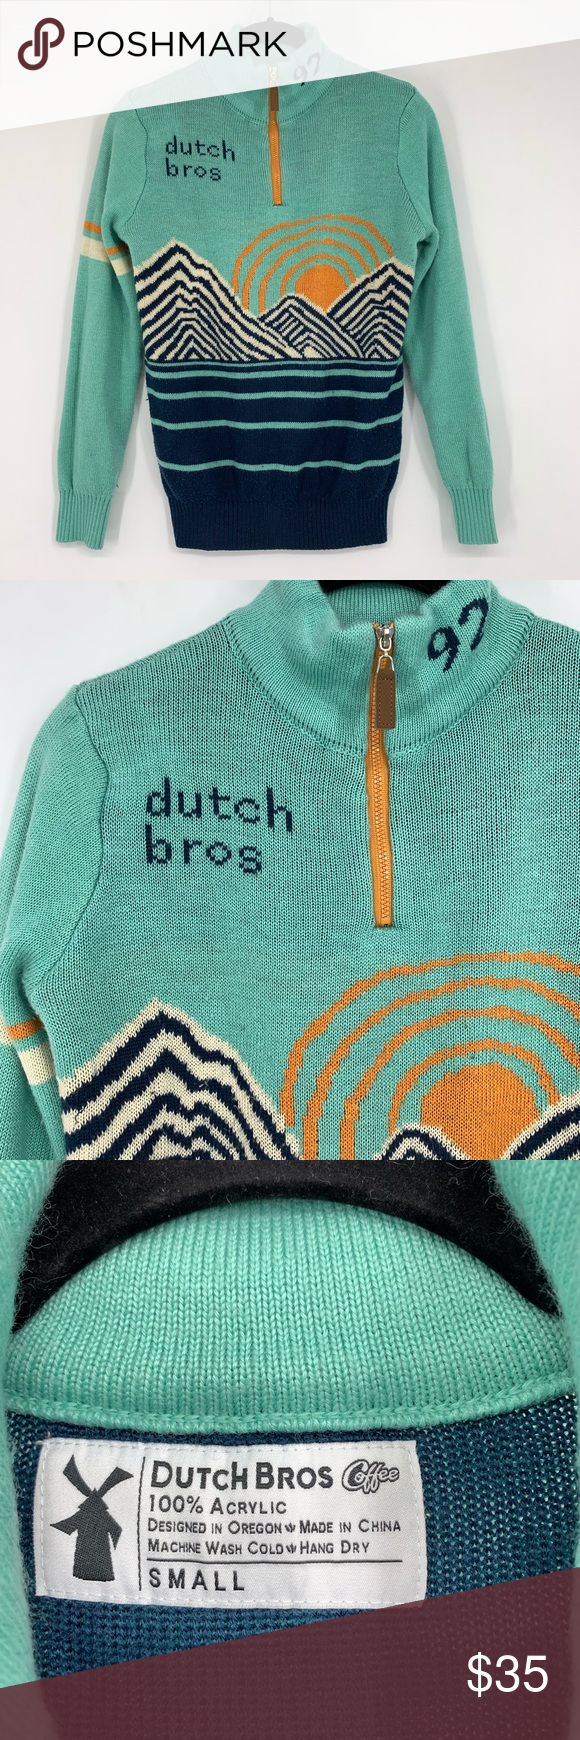 Dutch Bros Coffee Pullover 1/2 Zip Sweater Dutch Bros Coffee pullover 1/2 zip sweater with mountain sunrise theme. Gently used, please see photos.   Womens size small dutch bros Sweaters #dutchbros Dutch Bros Coffee Pullover 1/2 Zip Sweater Dutch Bros Coffee pullover 1/2 zip sweater with mountain sunrise theme. Gently used, please see photos.   Womens size small dutch bros Sweaters #dutchbros Dutch Bros Coffee Pullover 1/2 Zip Sweater Dutch Bros Coffee pullover 1/2 zip sweater with mountain sunr #dutchbros